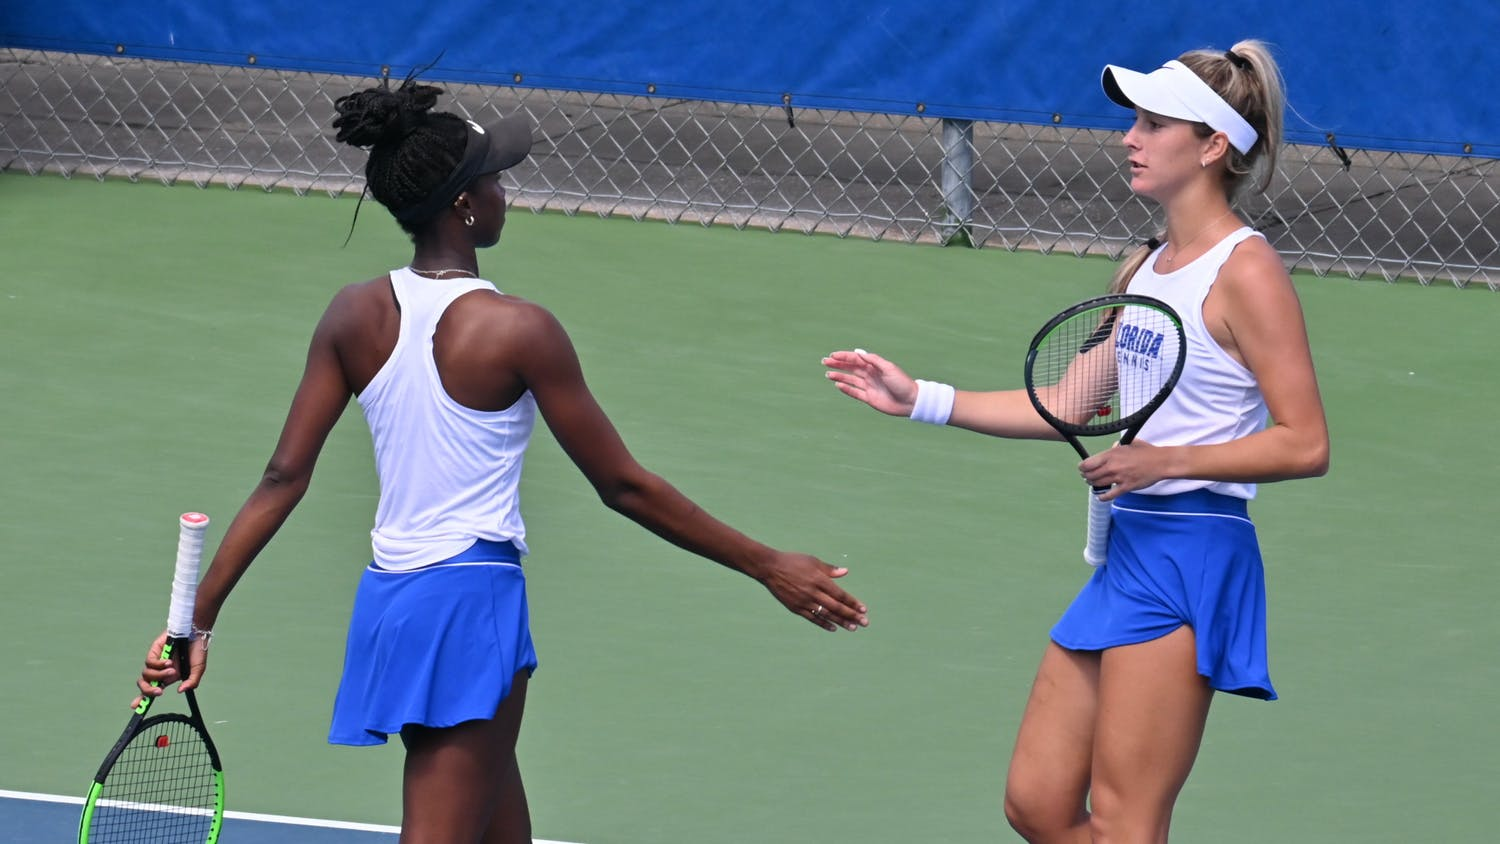 McCartney Kessler and Marlee Zein look to increase their doubles streak to six Friday. The men's and women's squads prepare to take on the Georgia Bulldogs, whose teams hold a 13-3 combined record. Photo from UF-Texas A&M game Feb. 28.